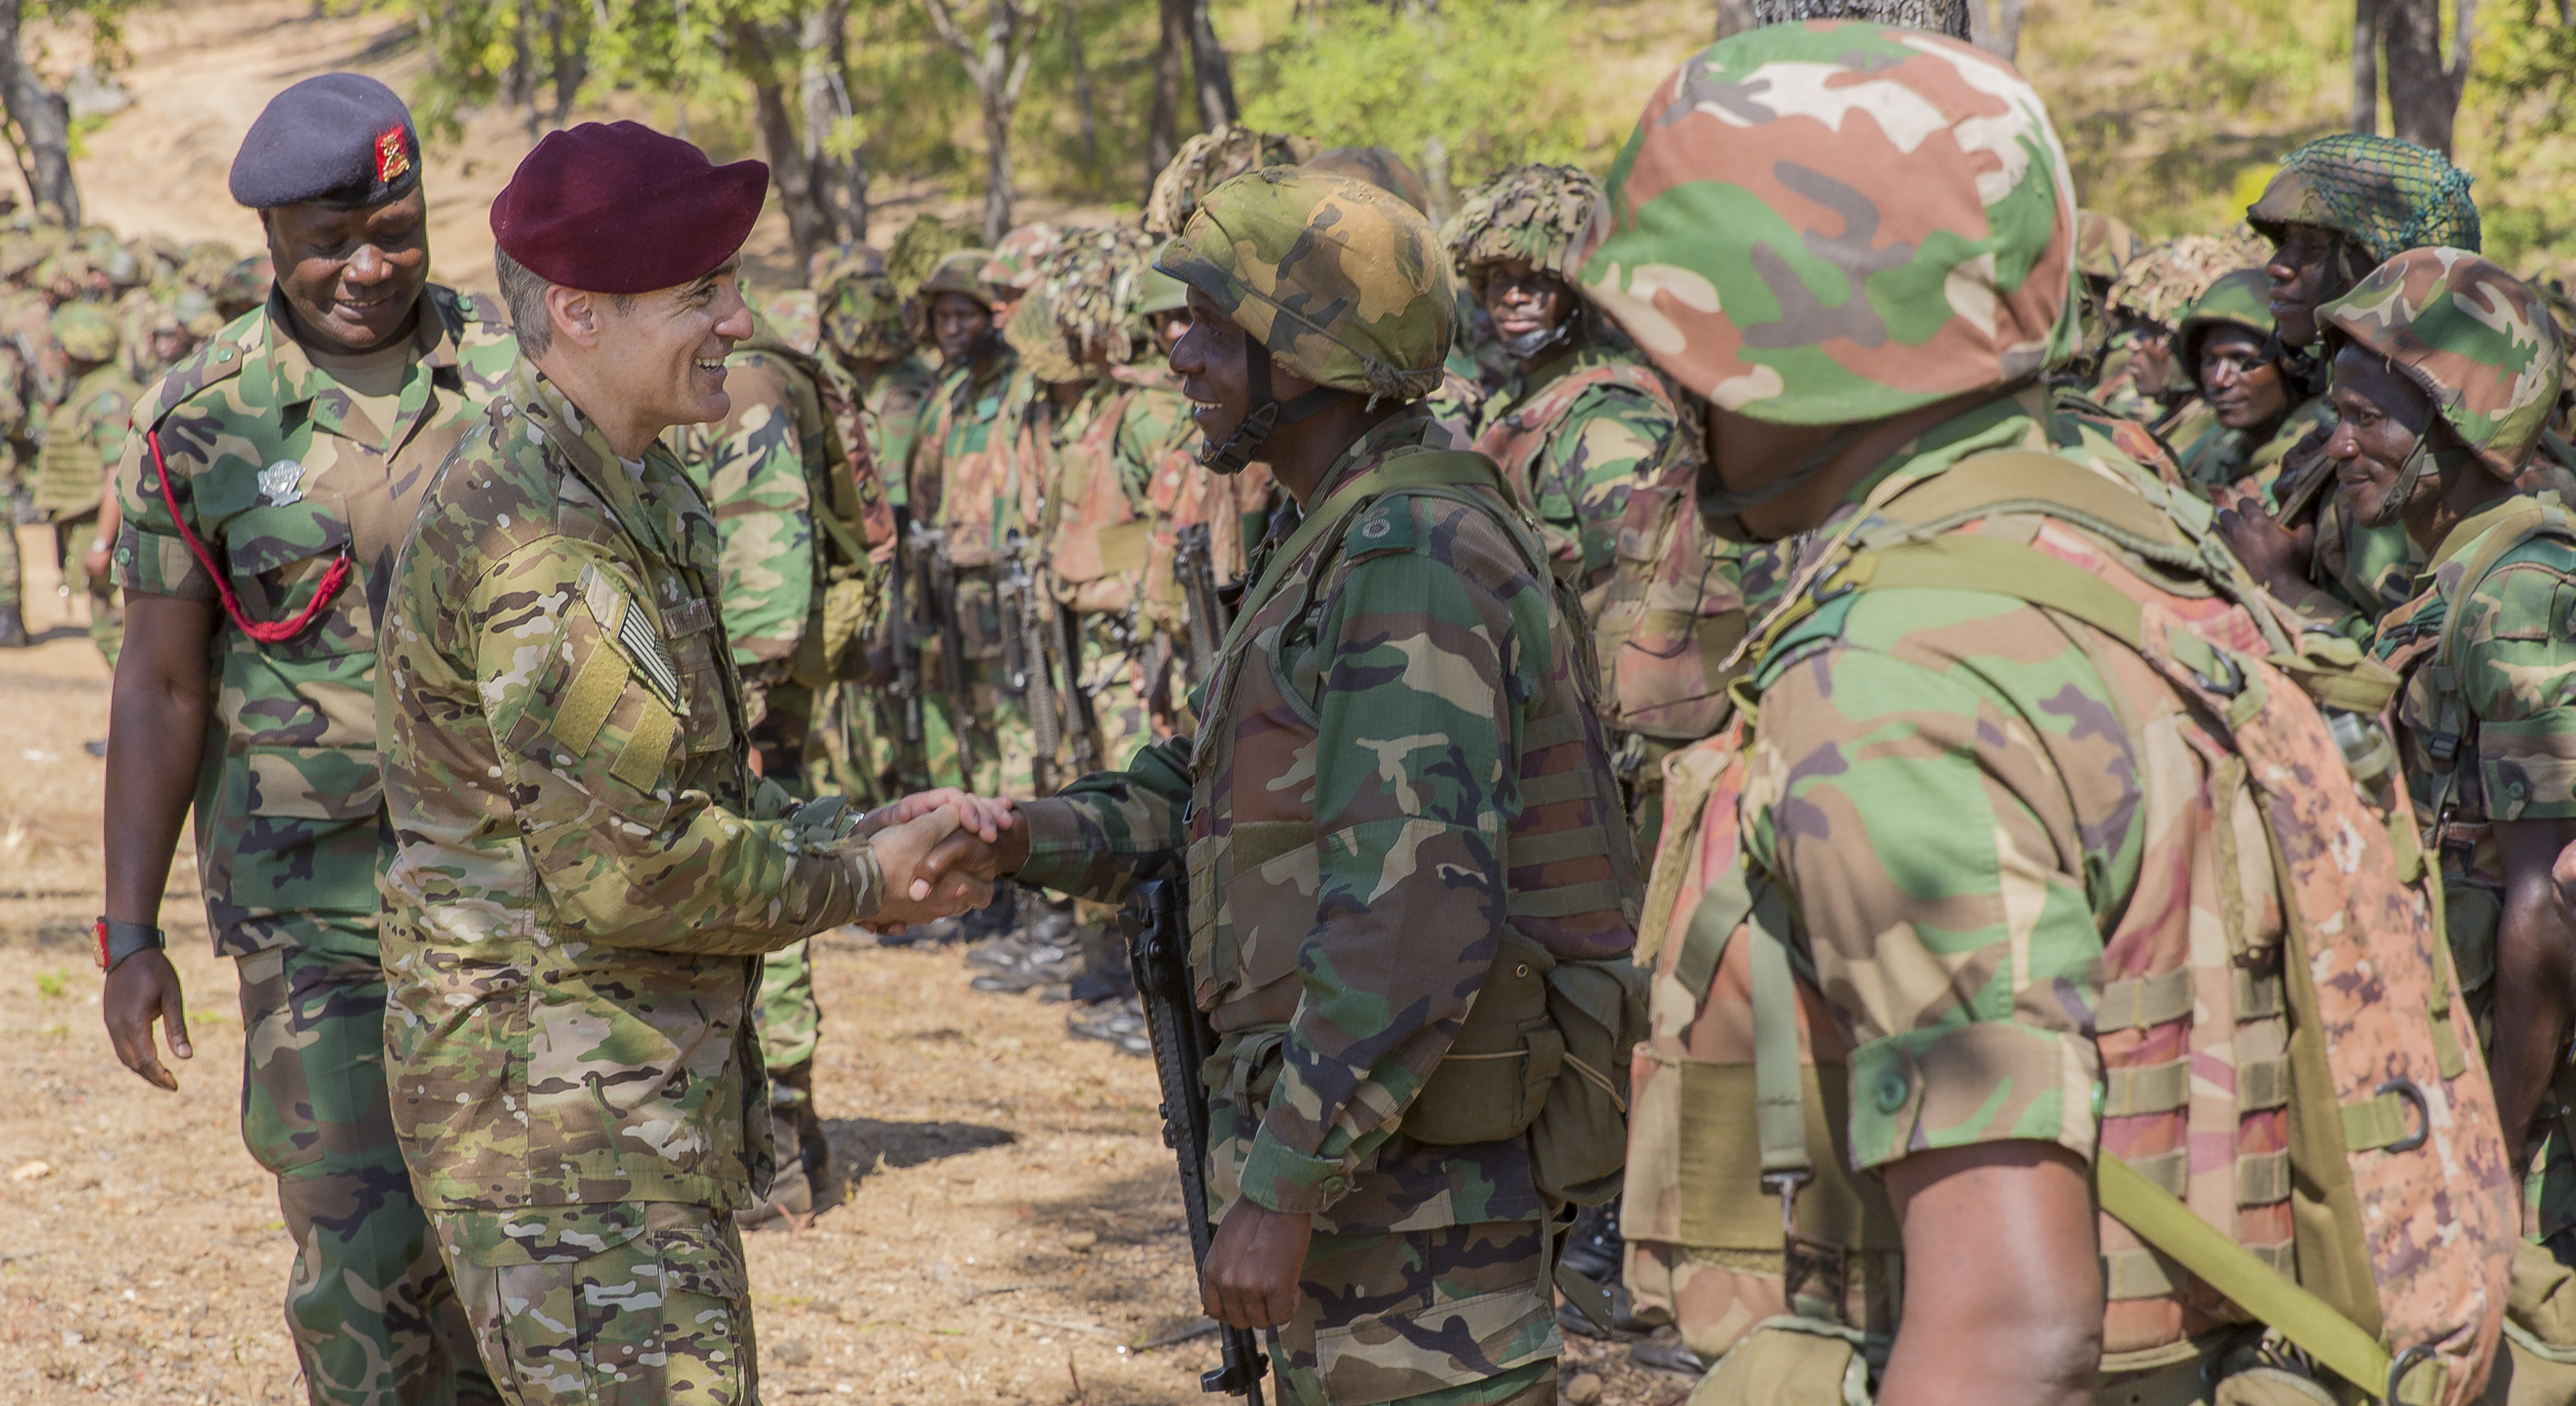 U.S. Africa Command Senior Enlisted Leader Command Chief Master Sgt. Ramon Colon-Lopez congratulates Malawi Defence Force Soldiers on graduating the Malawi Battalion Training Course in Malawi, Africa, May 31, 2018. Colon-Lopez travelled to Malawi to meet with the Malawi Defence Force, engaging with both senior officer and enlisted leadership as part of a three-day tour. The visit included a follow-up on issues addressed by the MDF during the Africa Senior Enlisted Leader Conference in November 2017, as well as assess the MDF's capability to train and sustain Peace Keeping Operations Forces.